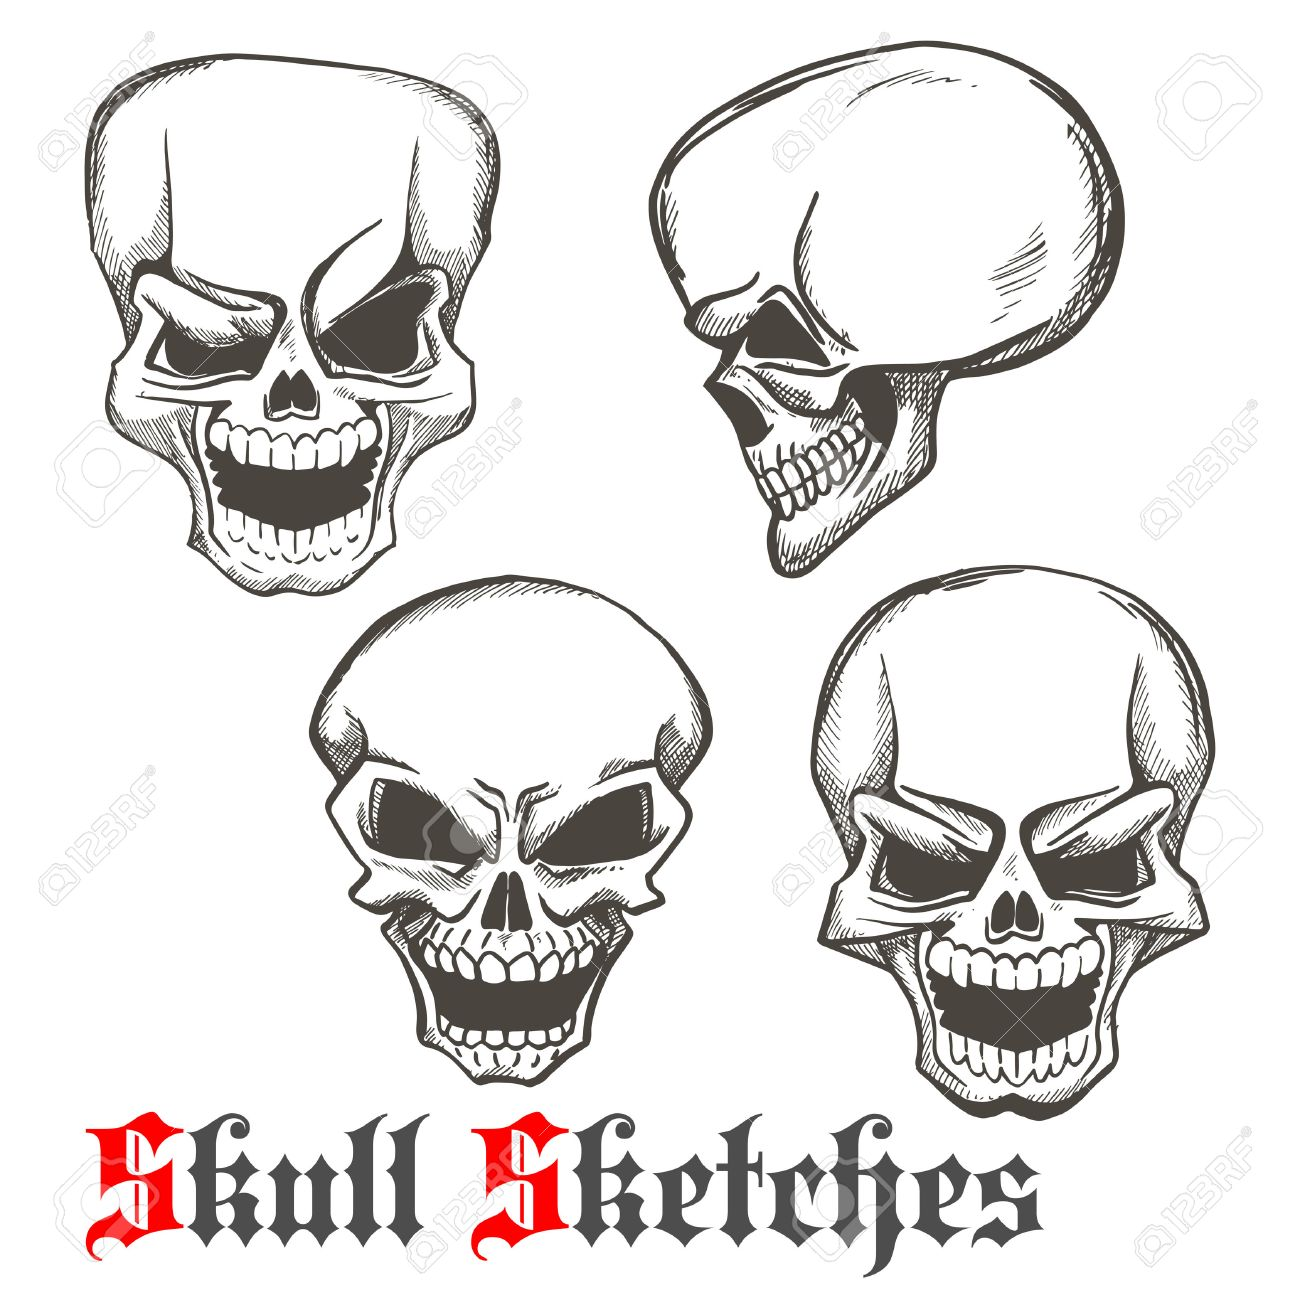 Smiling and winking skulls sketches of human skeleton heads with smiling and winking skulls sketches of human skeleton heads with evil laughing grins use as ccuart Images